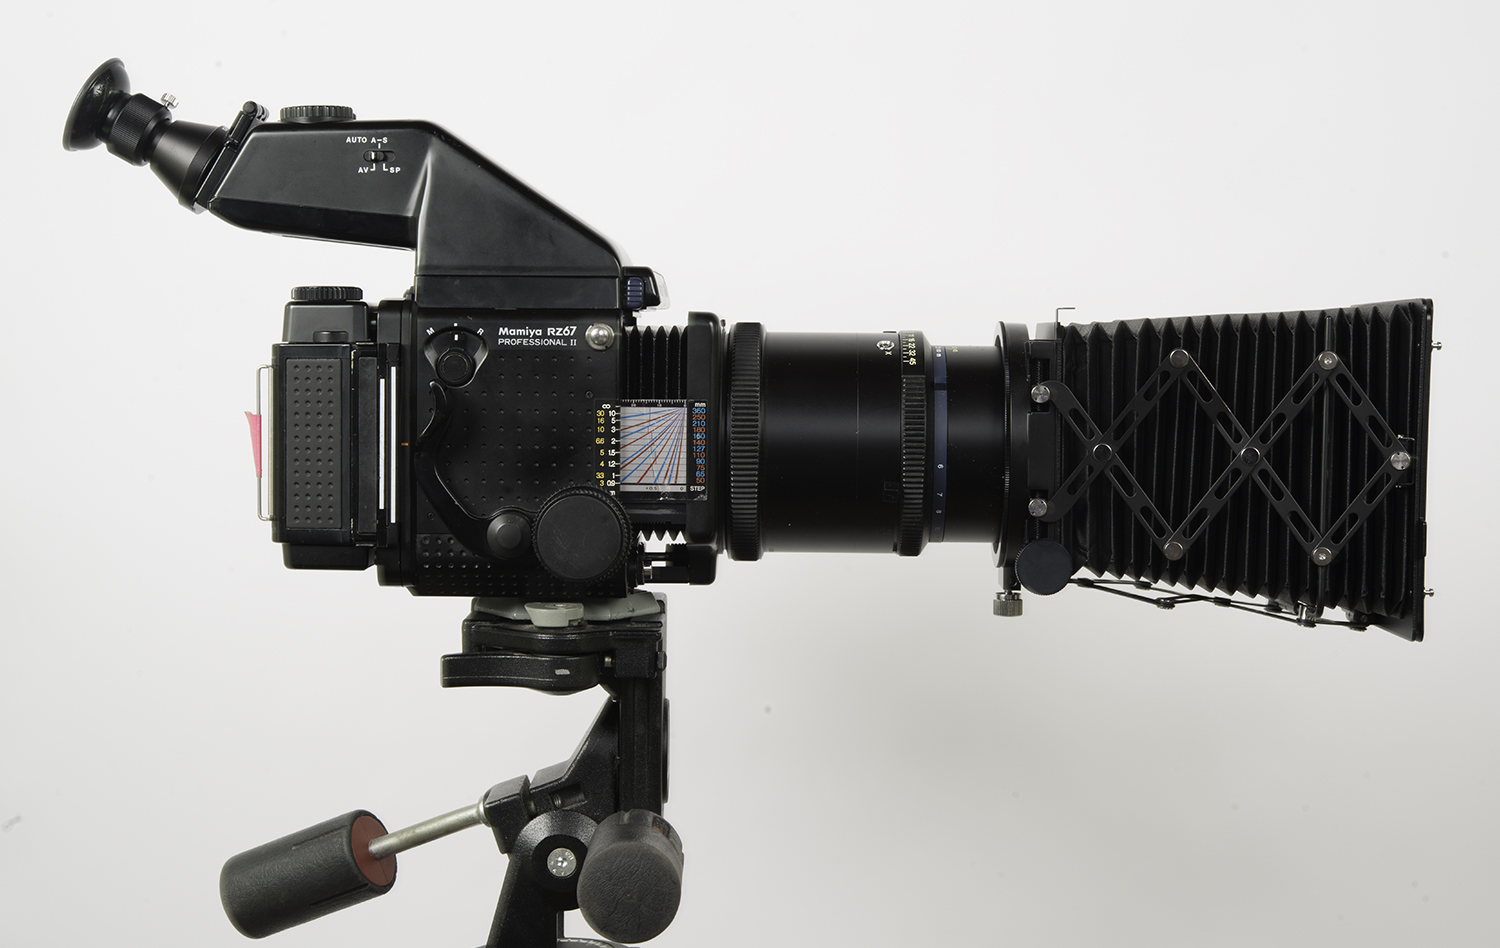 Mamiya RZ67 with 500mm lens, filter holder and compendium shade